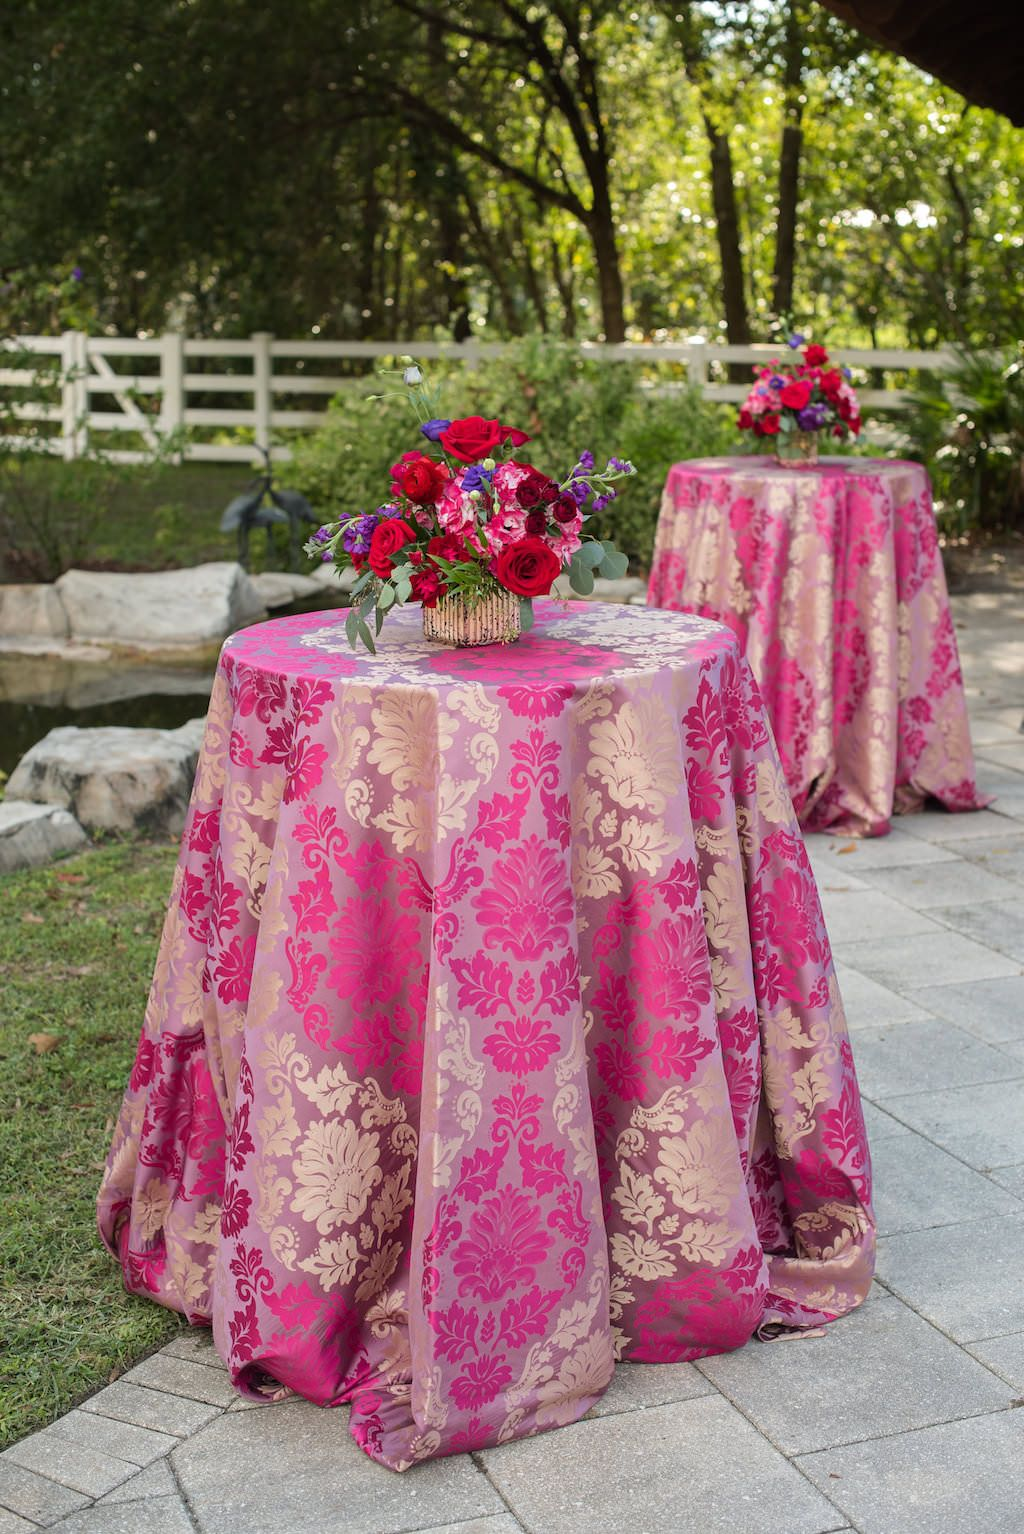 b8a2c458c Colorful Outdoor Wedding Cocktail Reception Decor with Centerpieces with  Red Roses